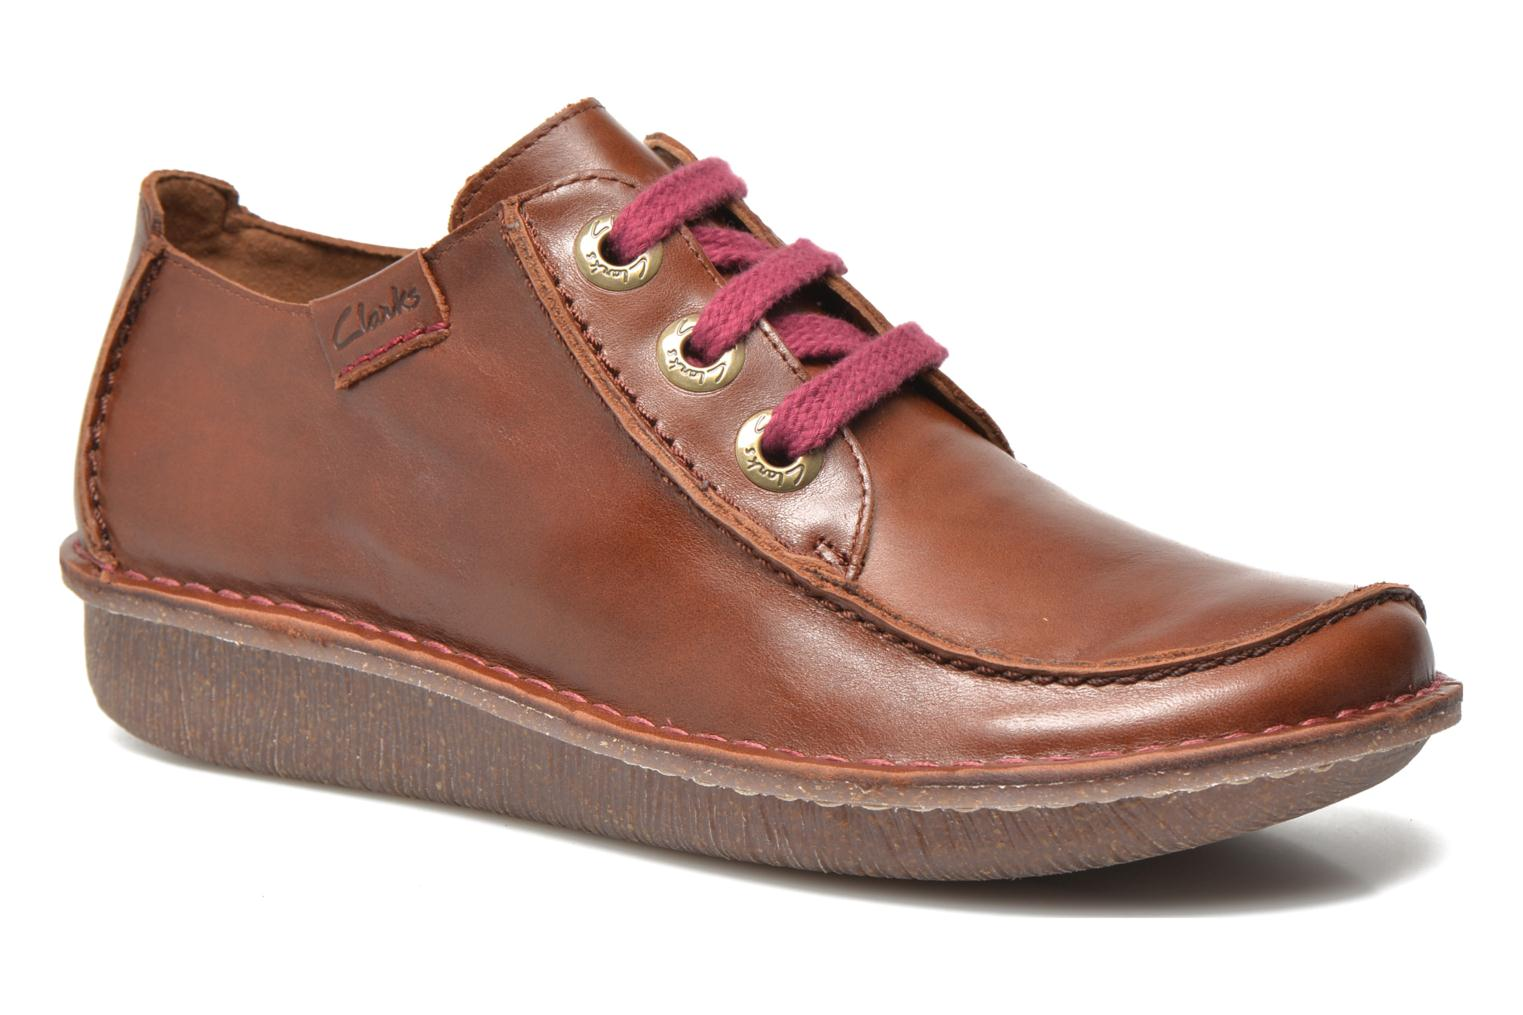 Marvin&Co STORY Lace-up shoes in Brown  W897905